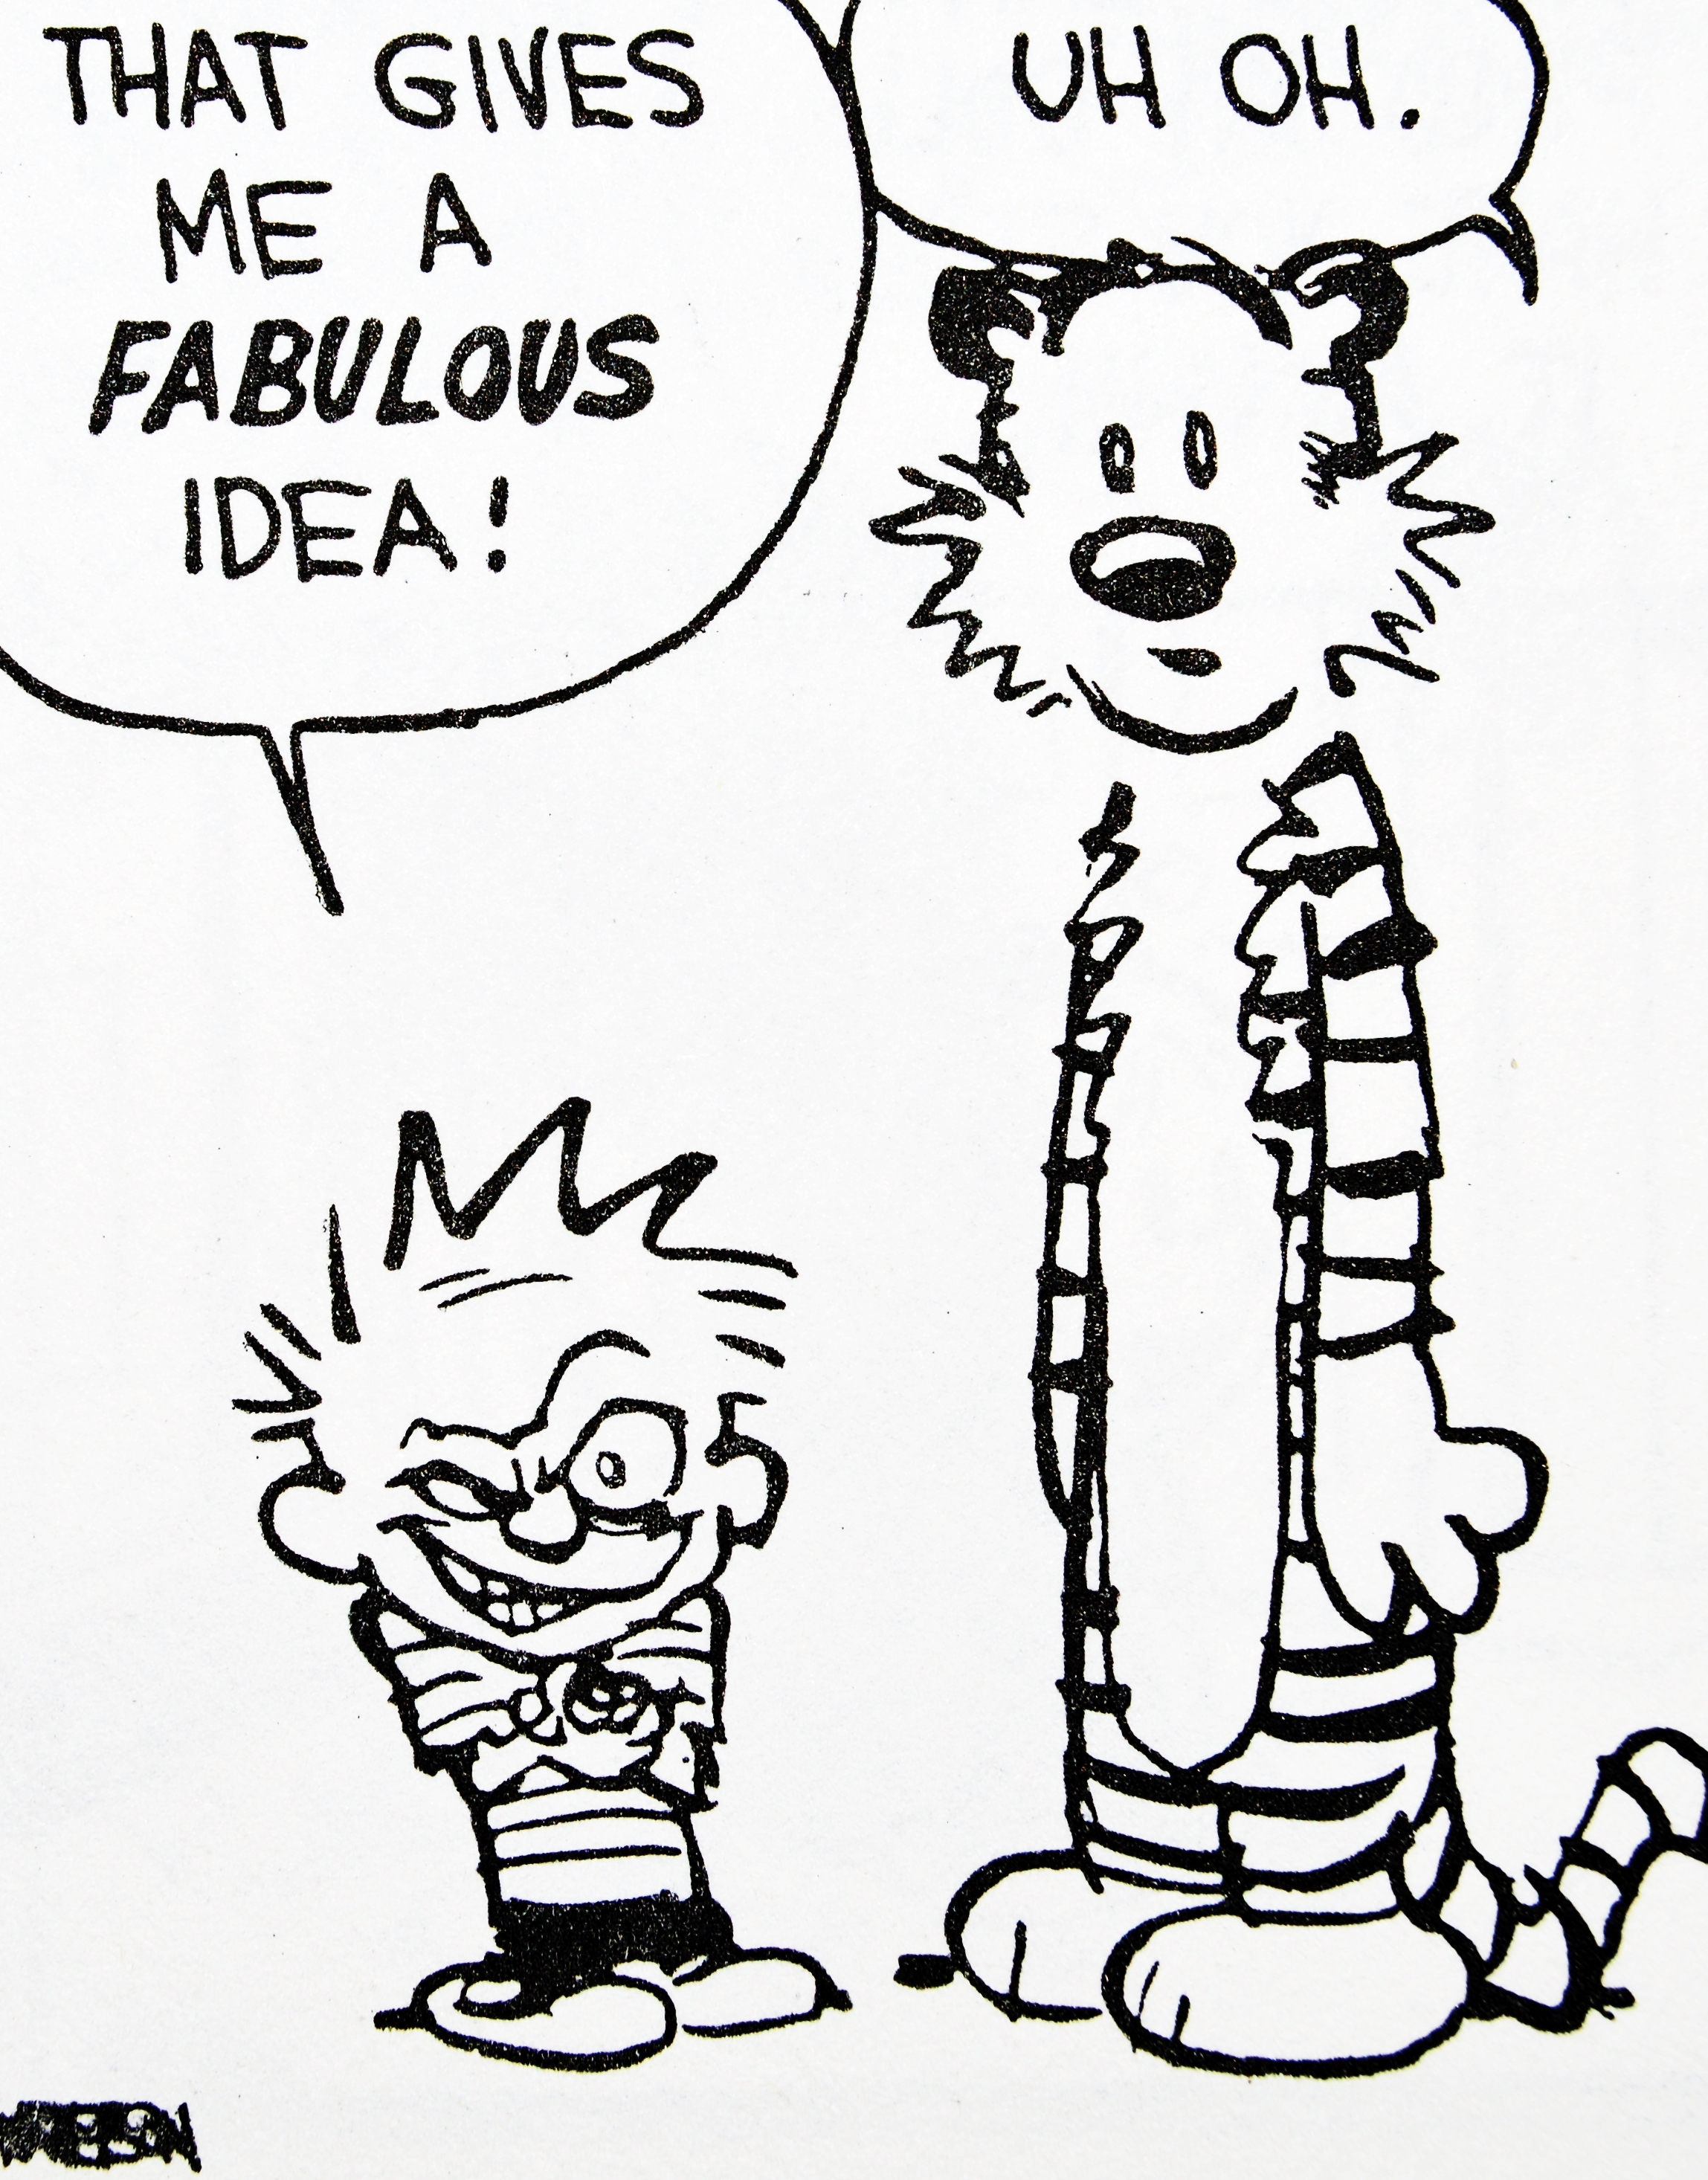 happy birthday drawing ideas ; drawing-calvin-and-hobbes-happy-birthday-calvin-hobbes-pinterest-happy-birthday